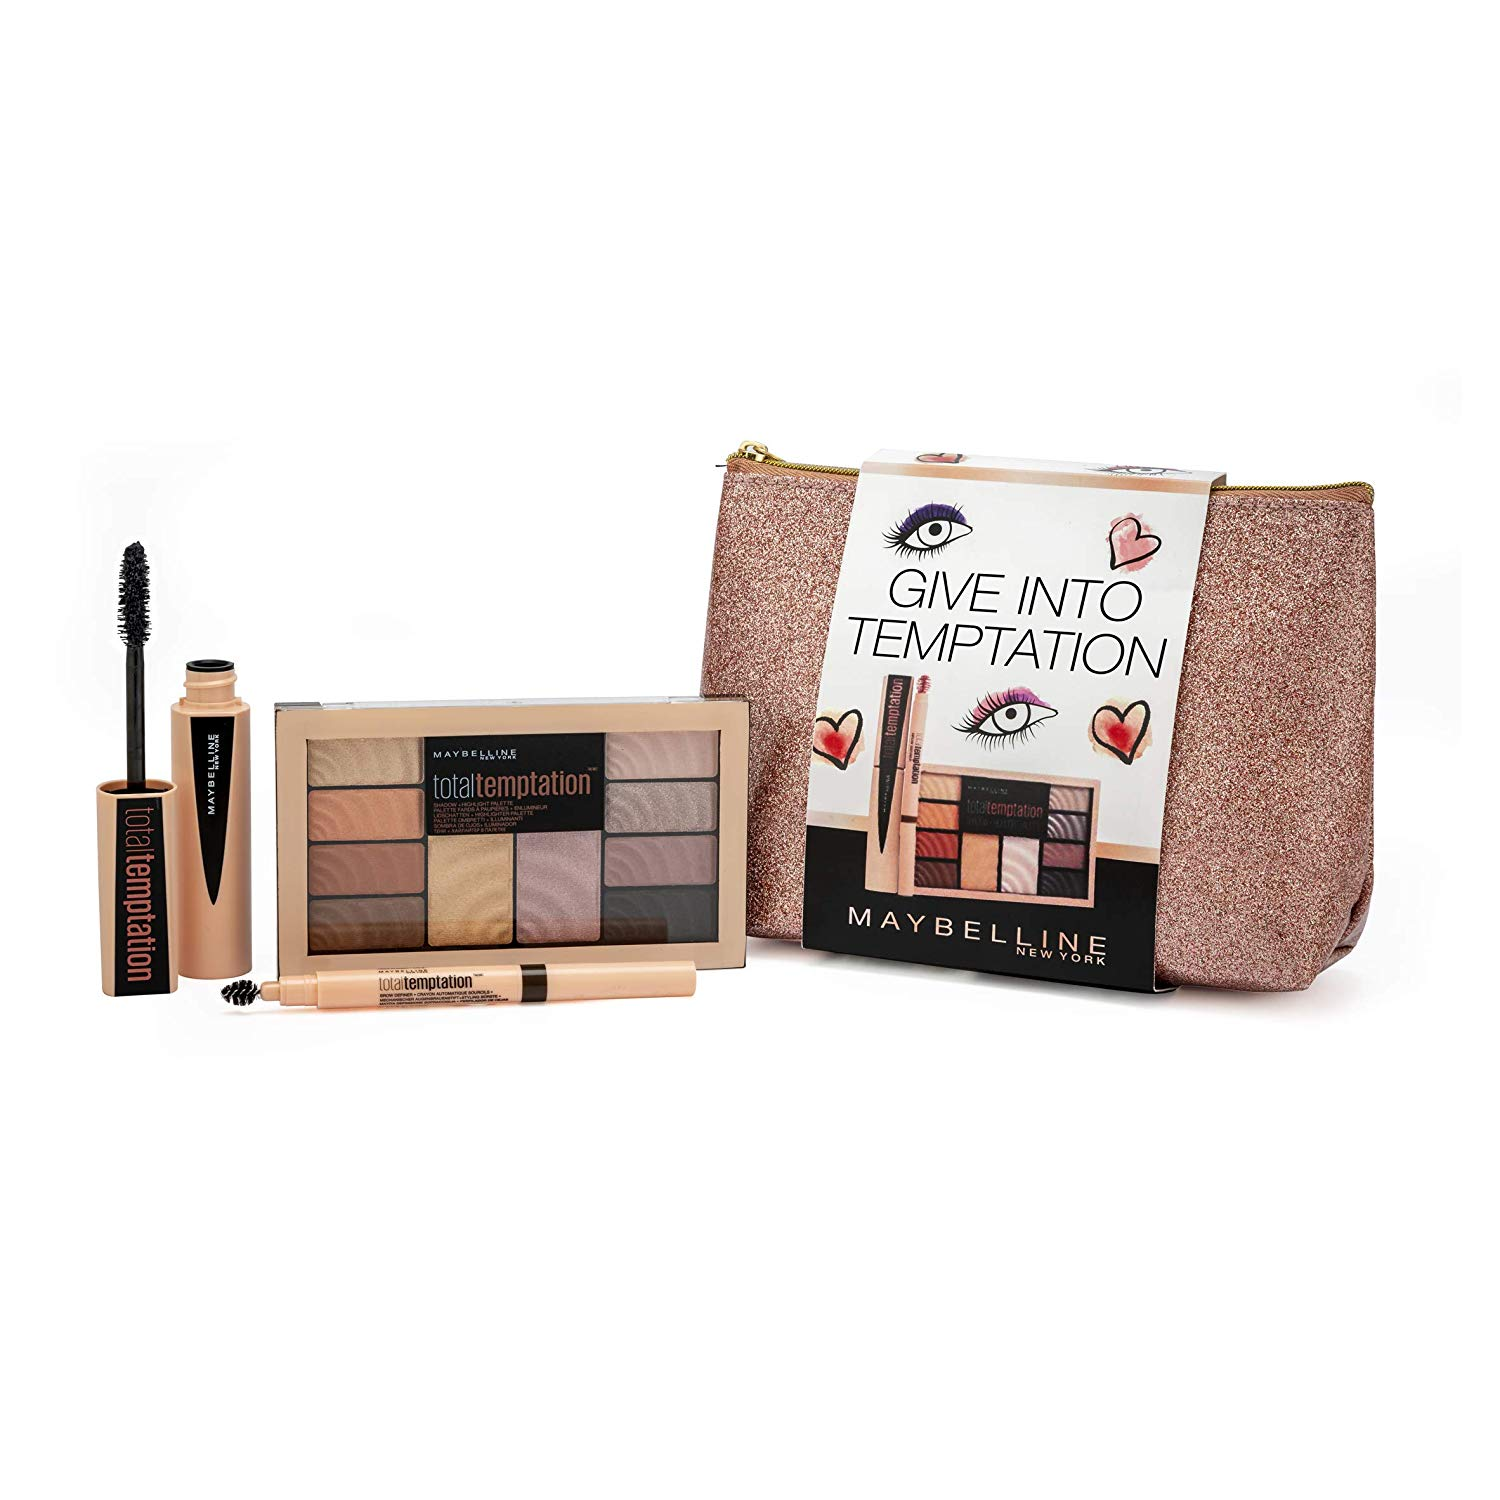 Maybelline Eye Candy Gift Set for Her